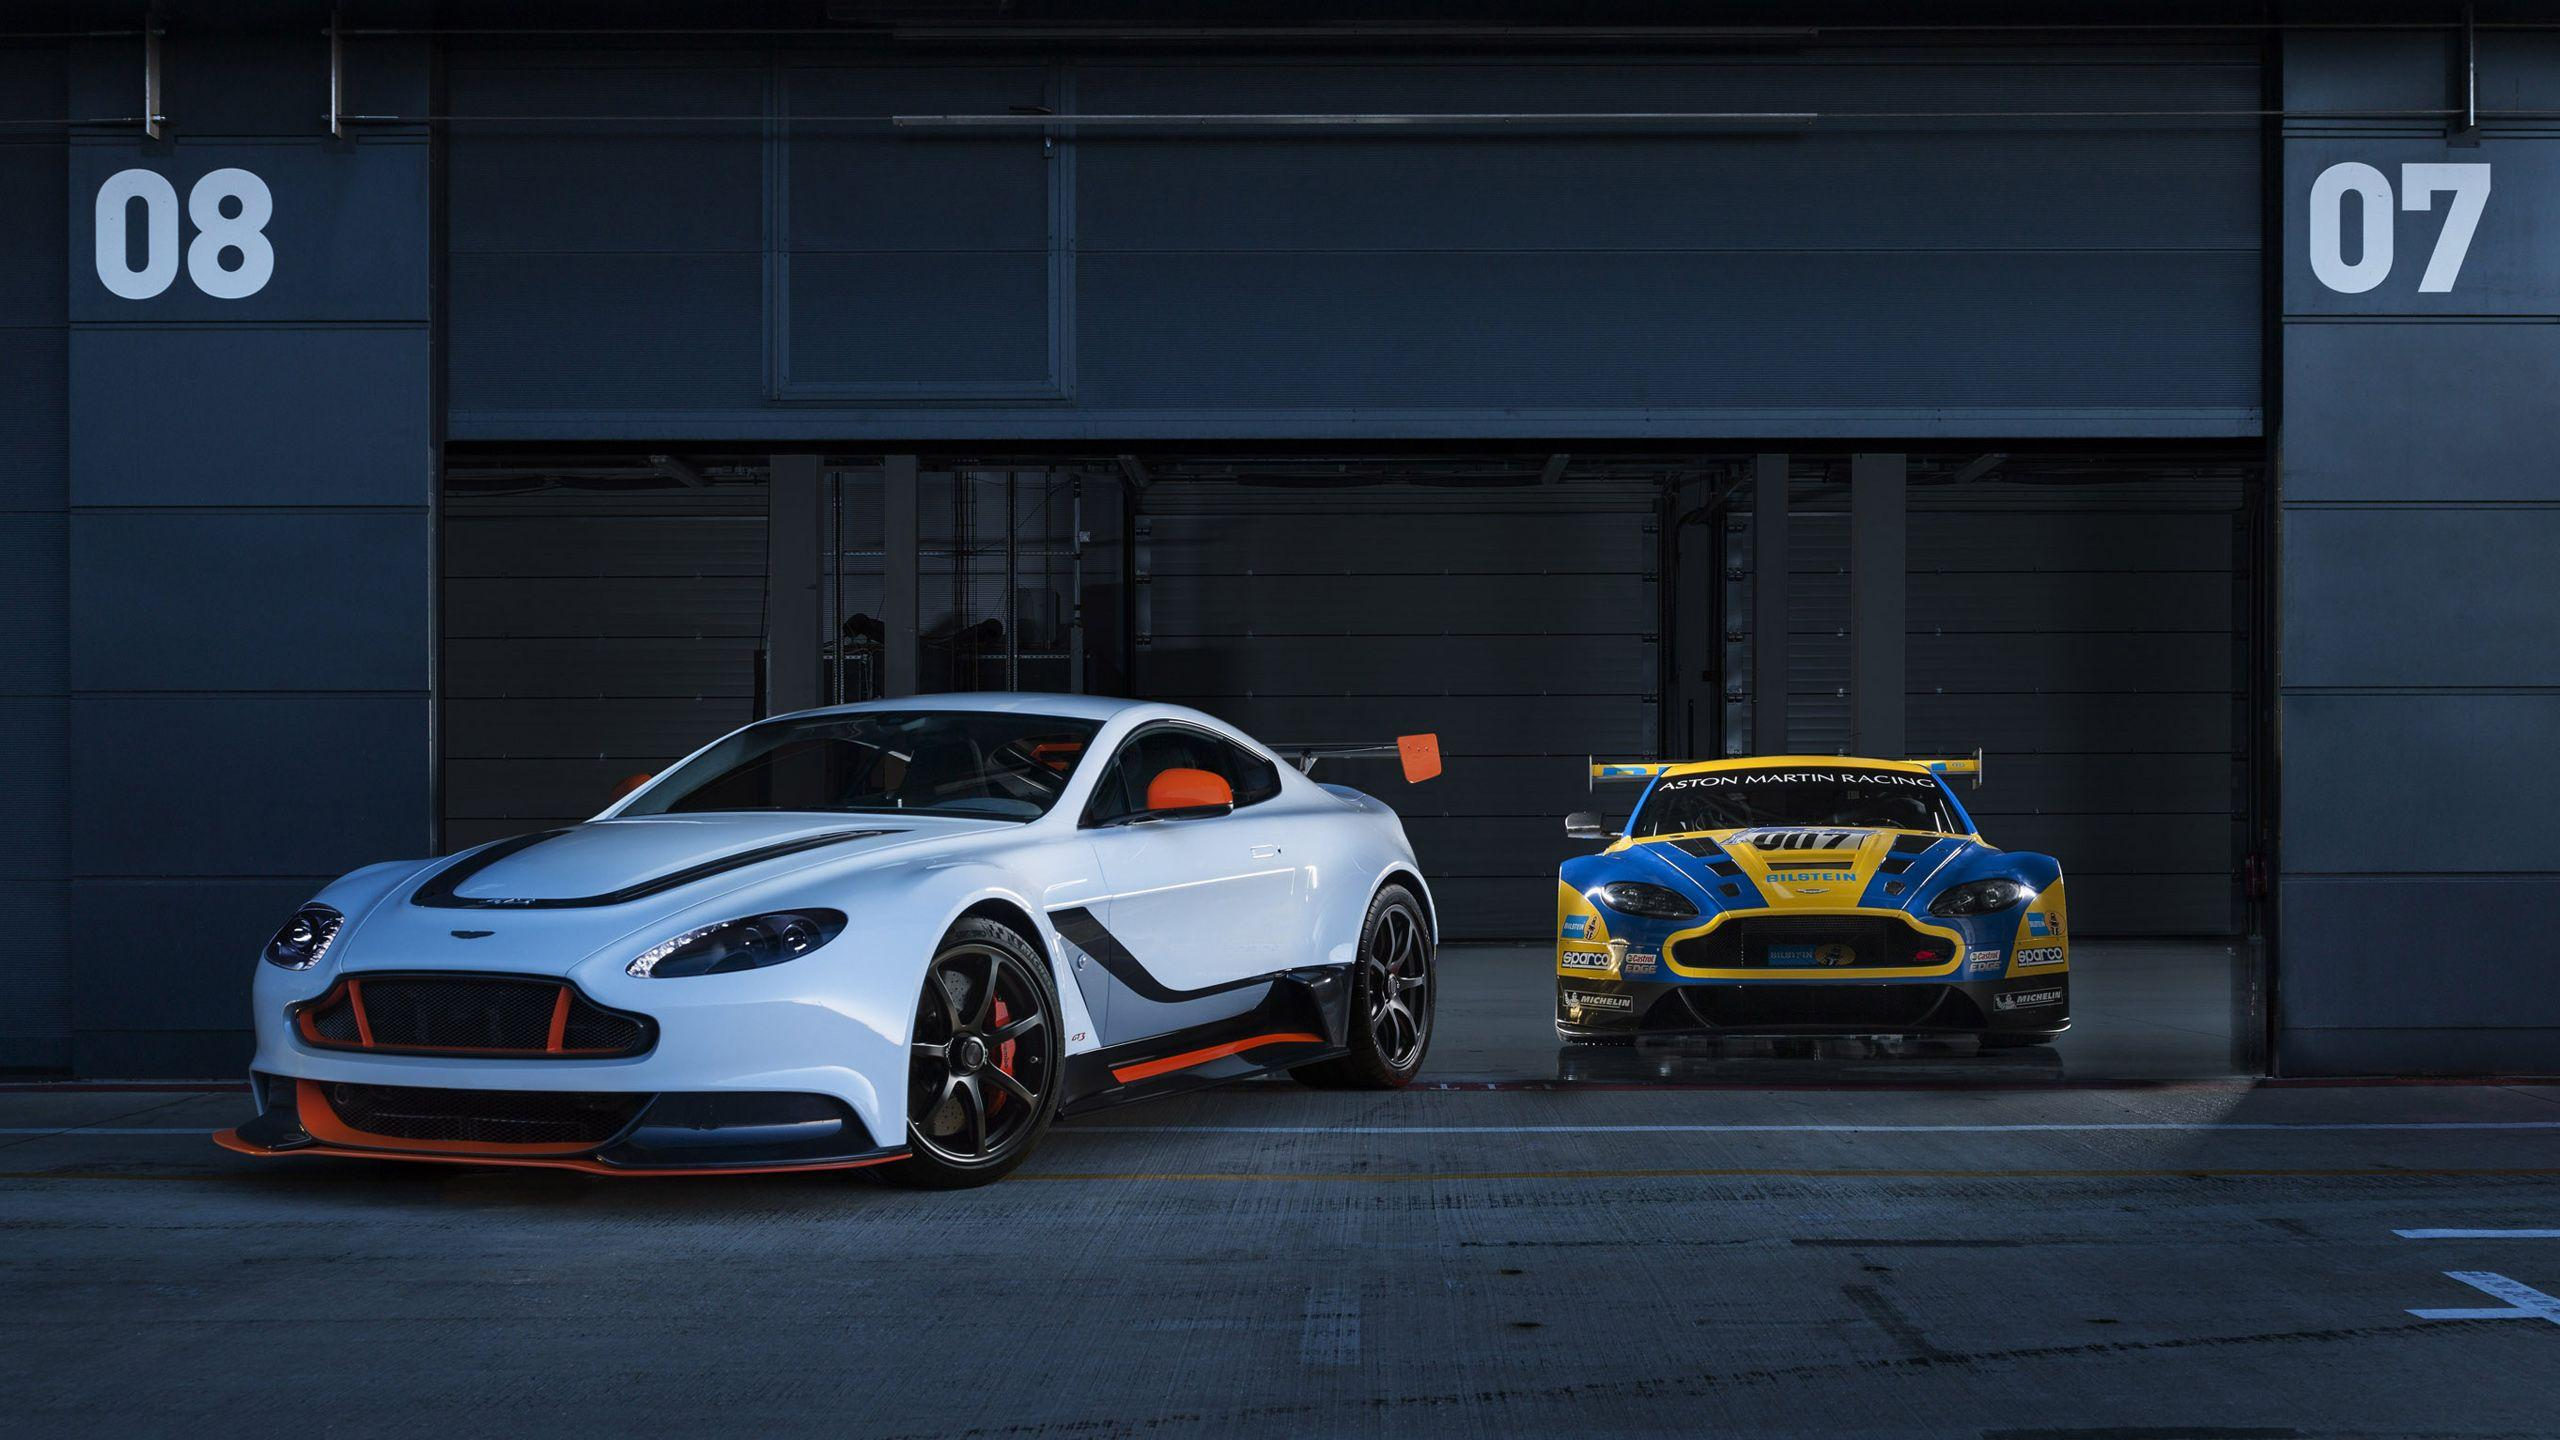 2015 Aston Martin Vantage GT3 Special Edition Wallpapers